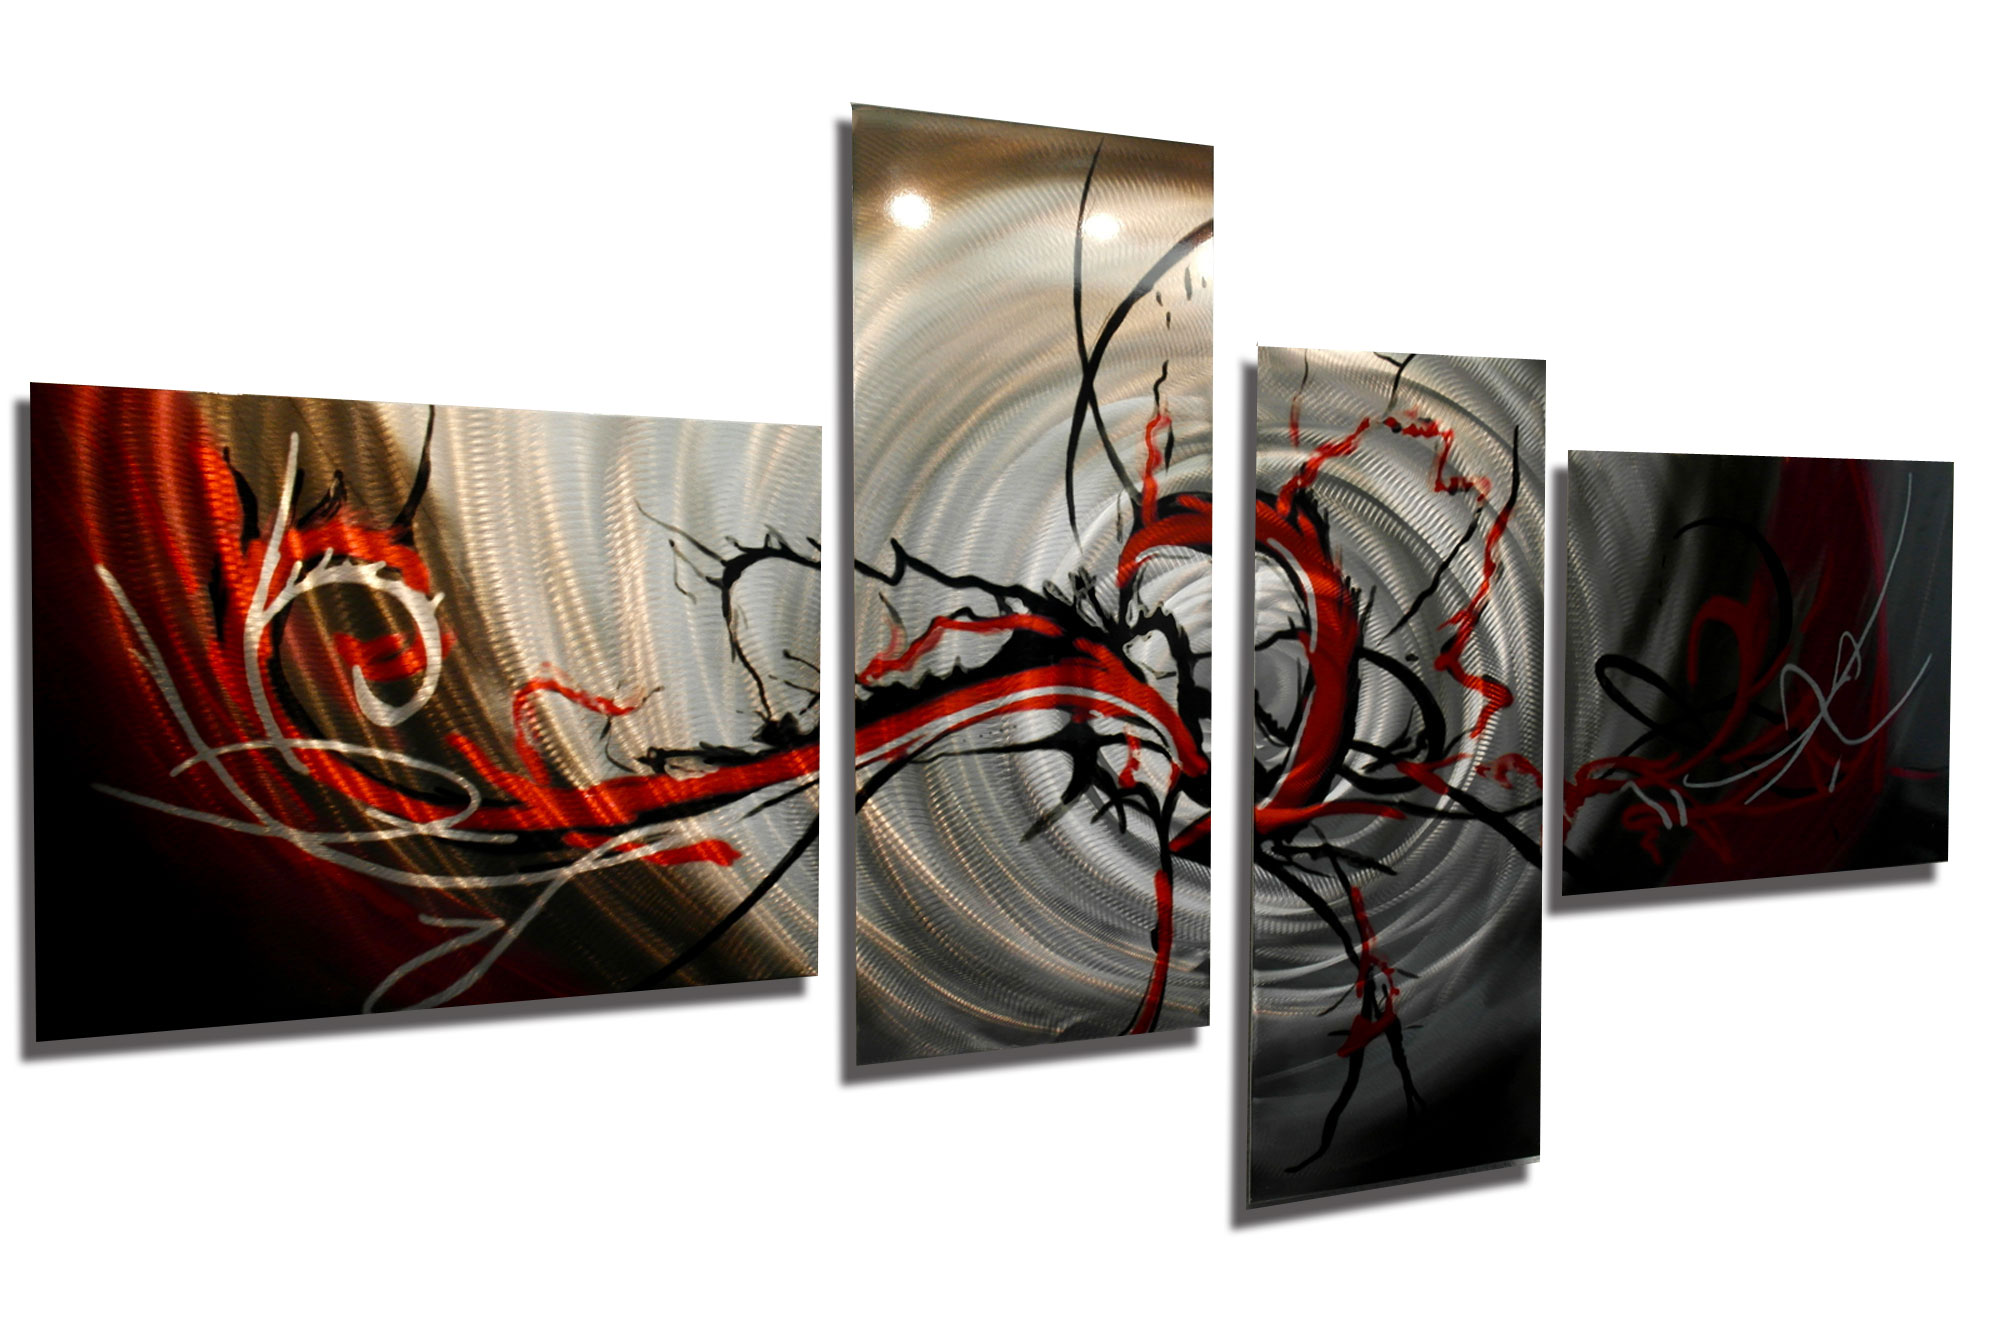 Basilisk In Red 67 X 34- Metal Wall Art Abstract